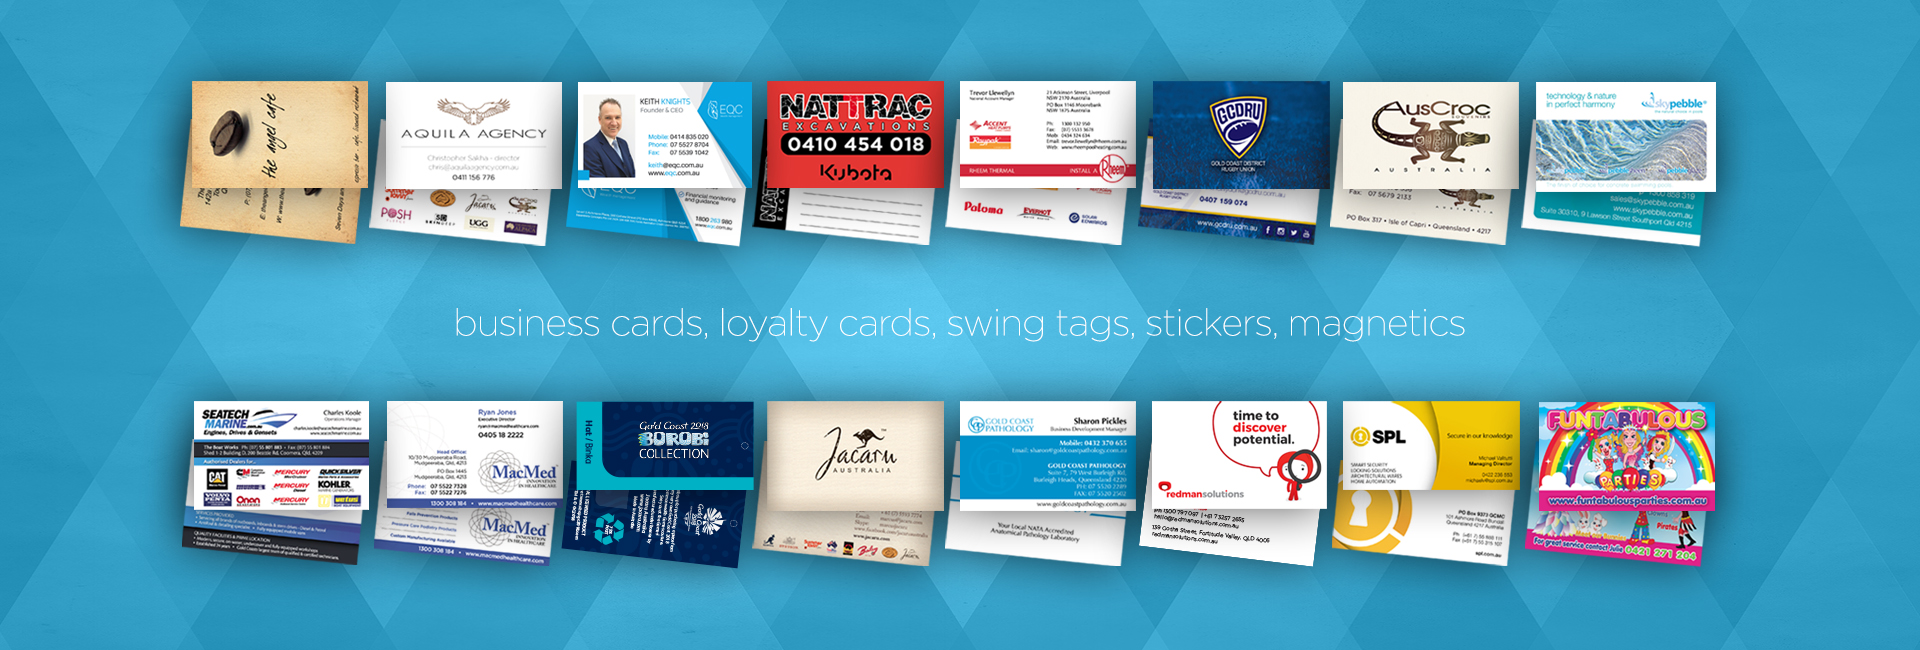 Business Cards and Swing Tags